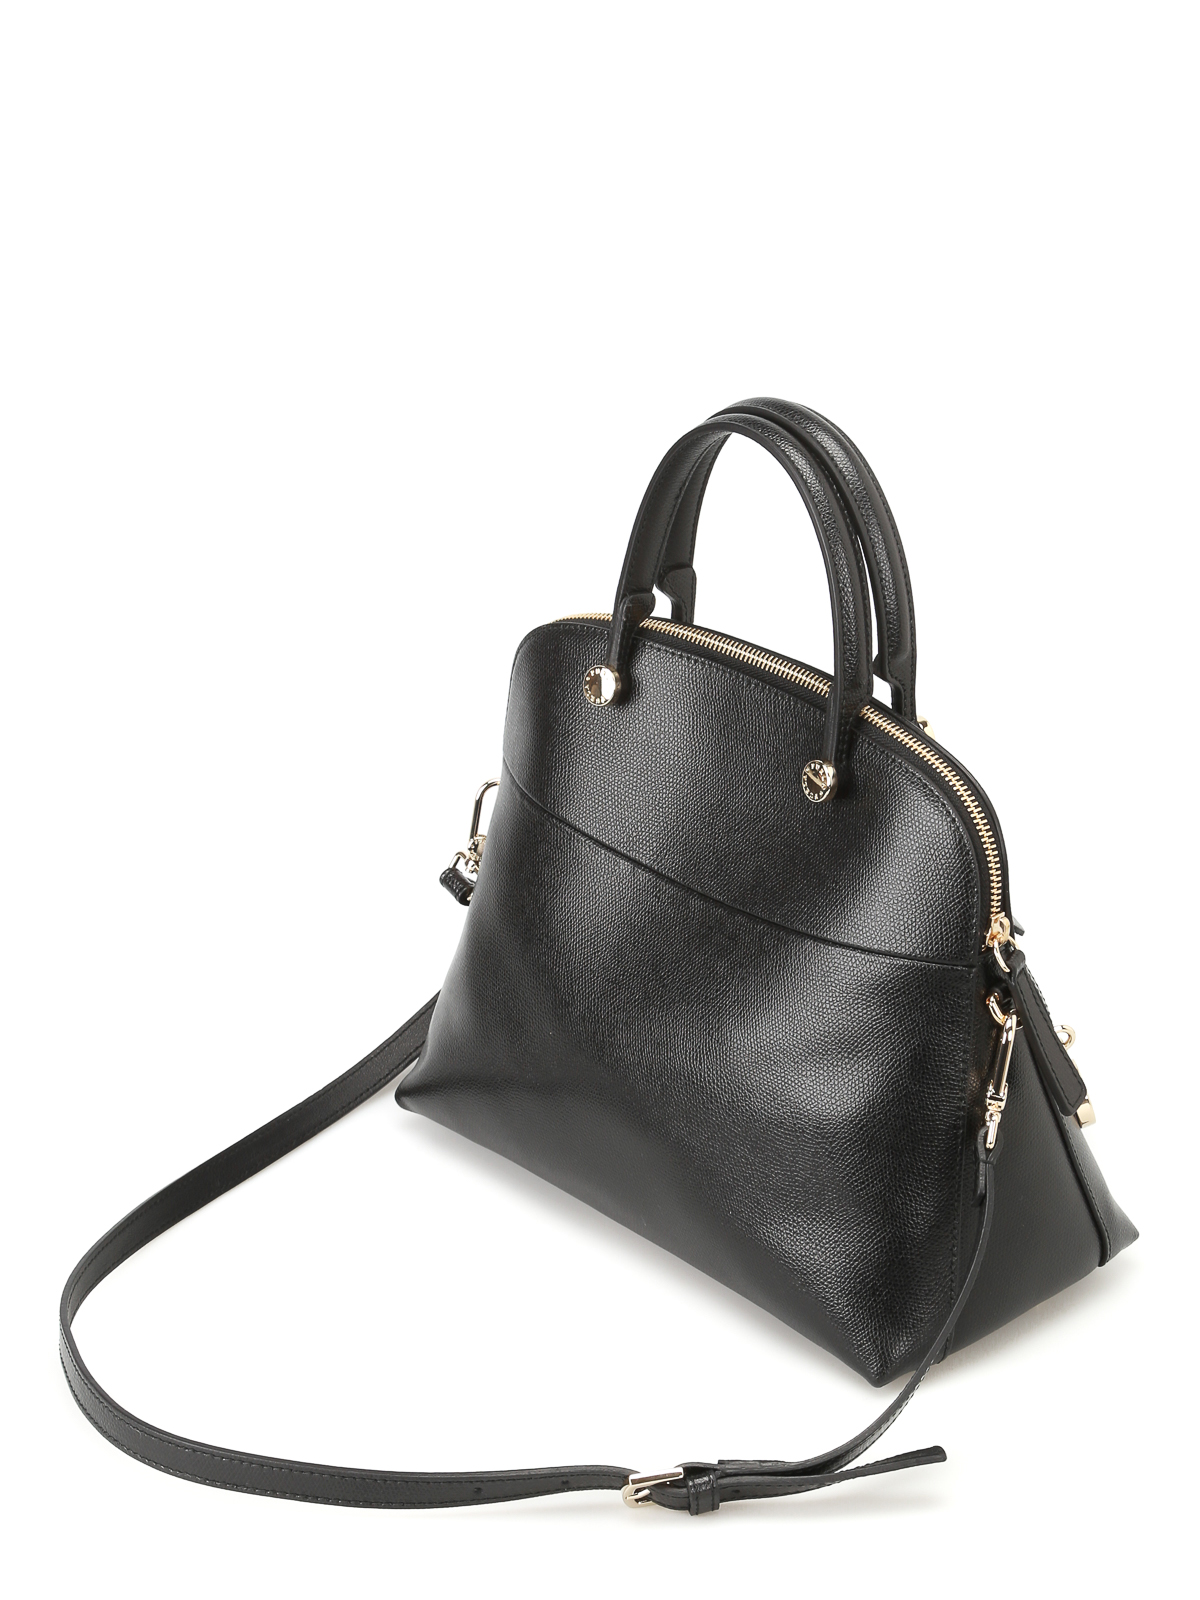 Furla Ares print leather Piper tote LPDXKY